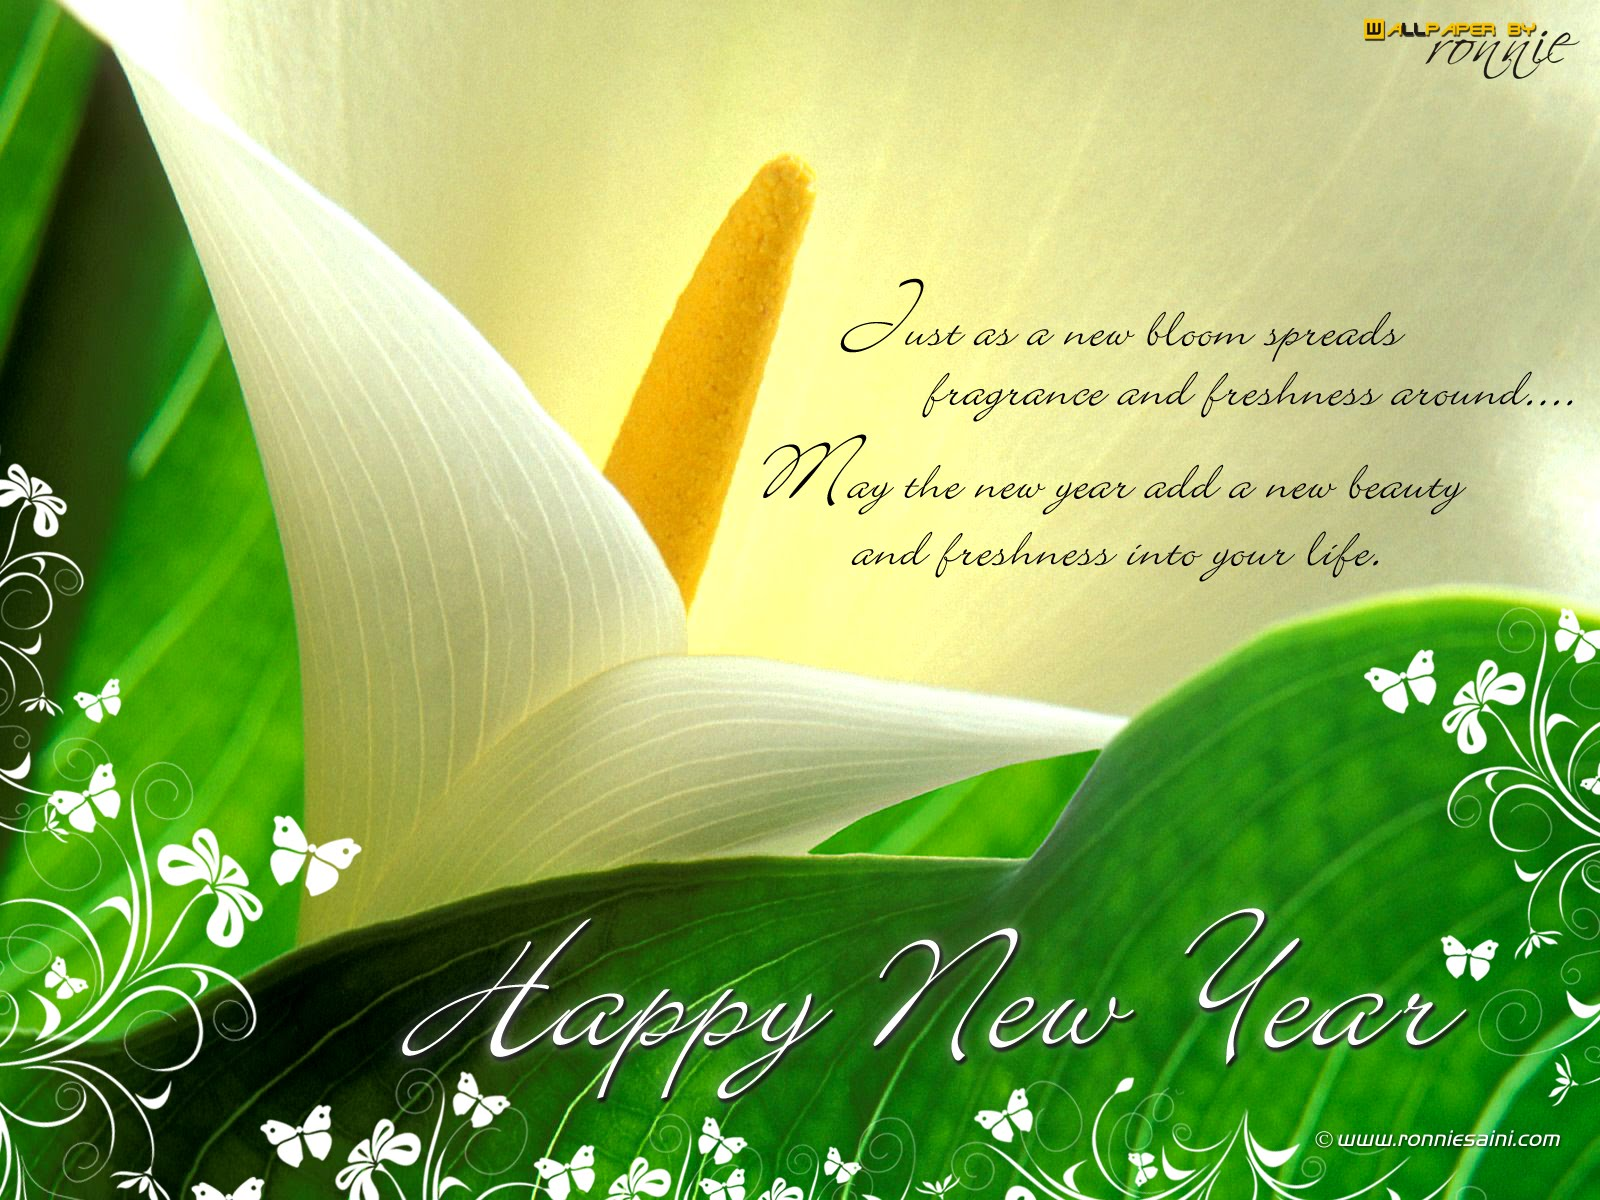 2013 New Year Wishes Wallpapers and sms. 1600 x 1200.Nice Happy New Year Text Messages